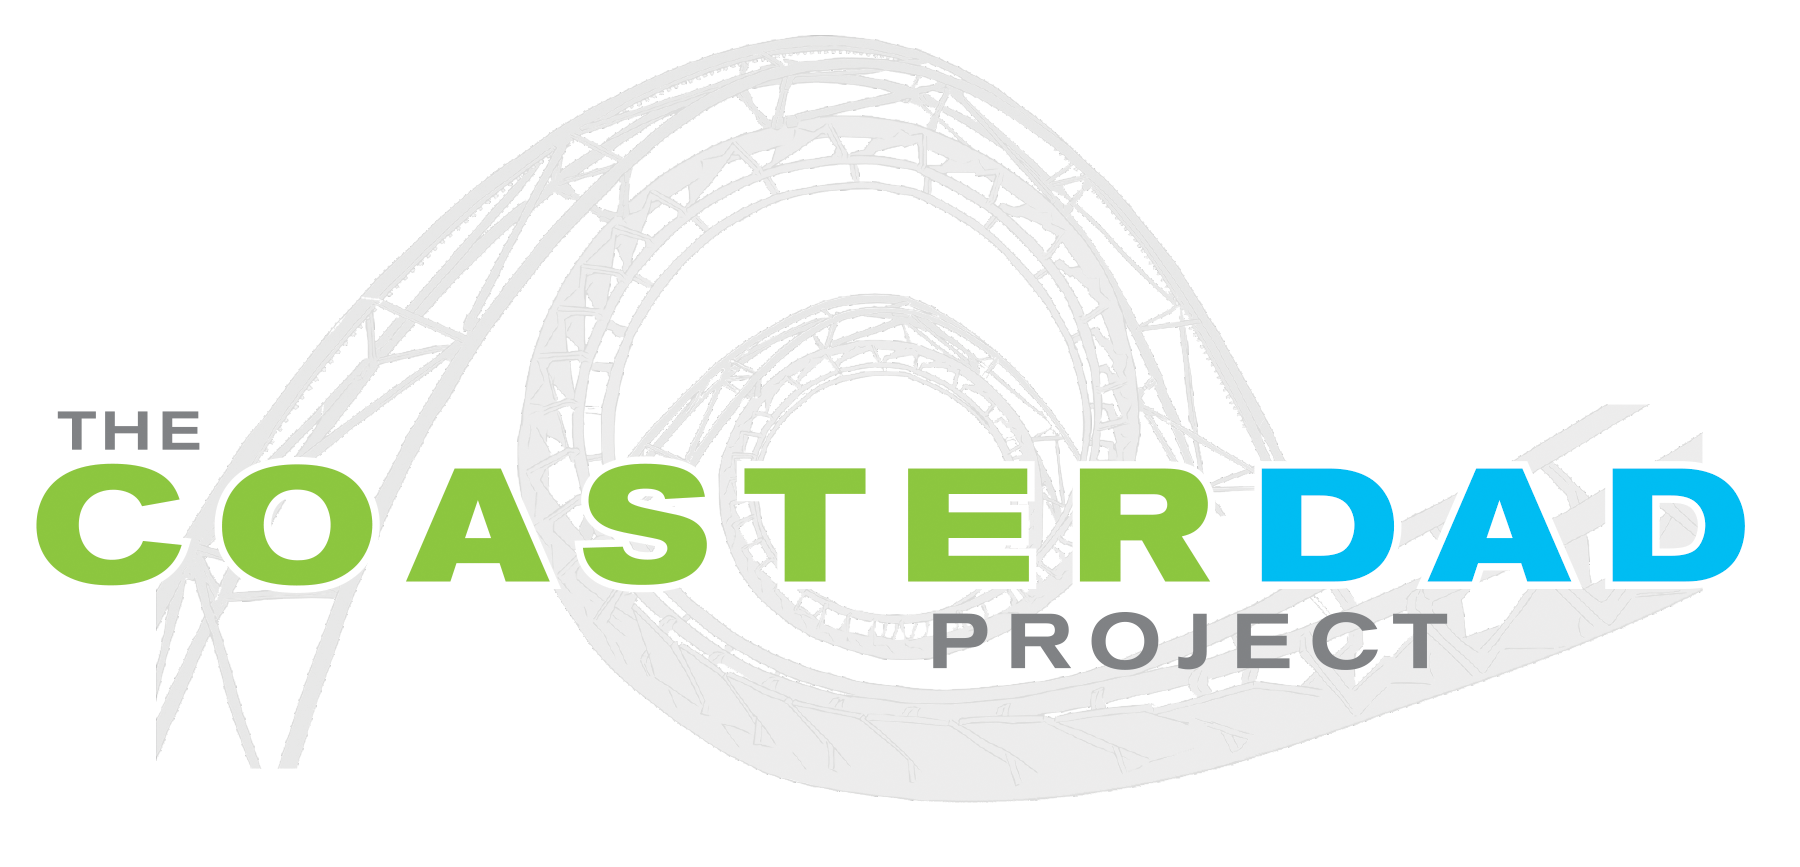 The CoasterDad Project Logo